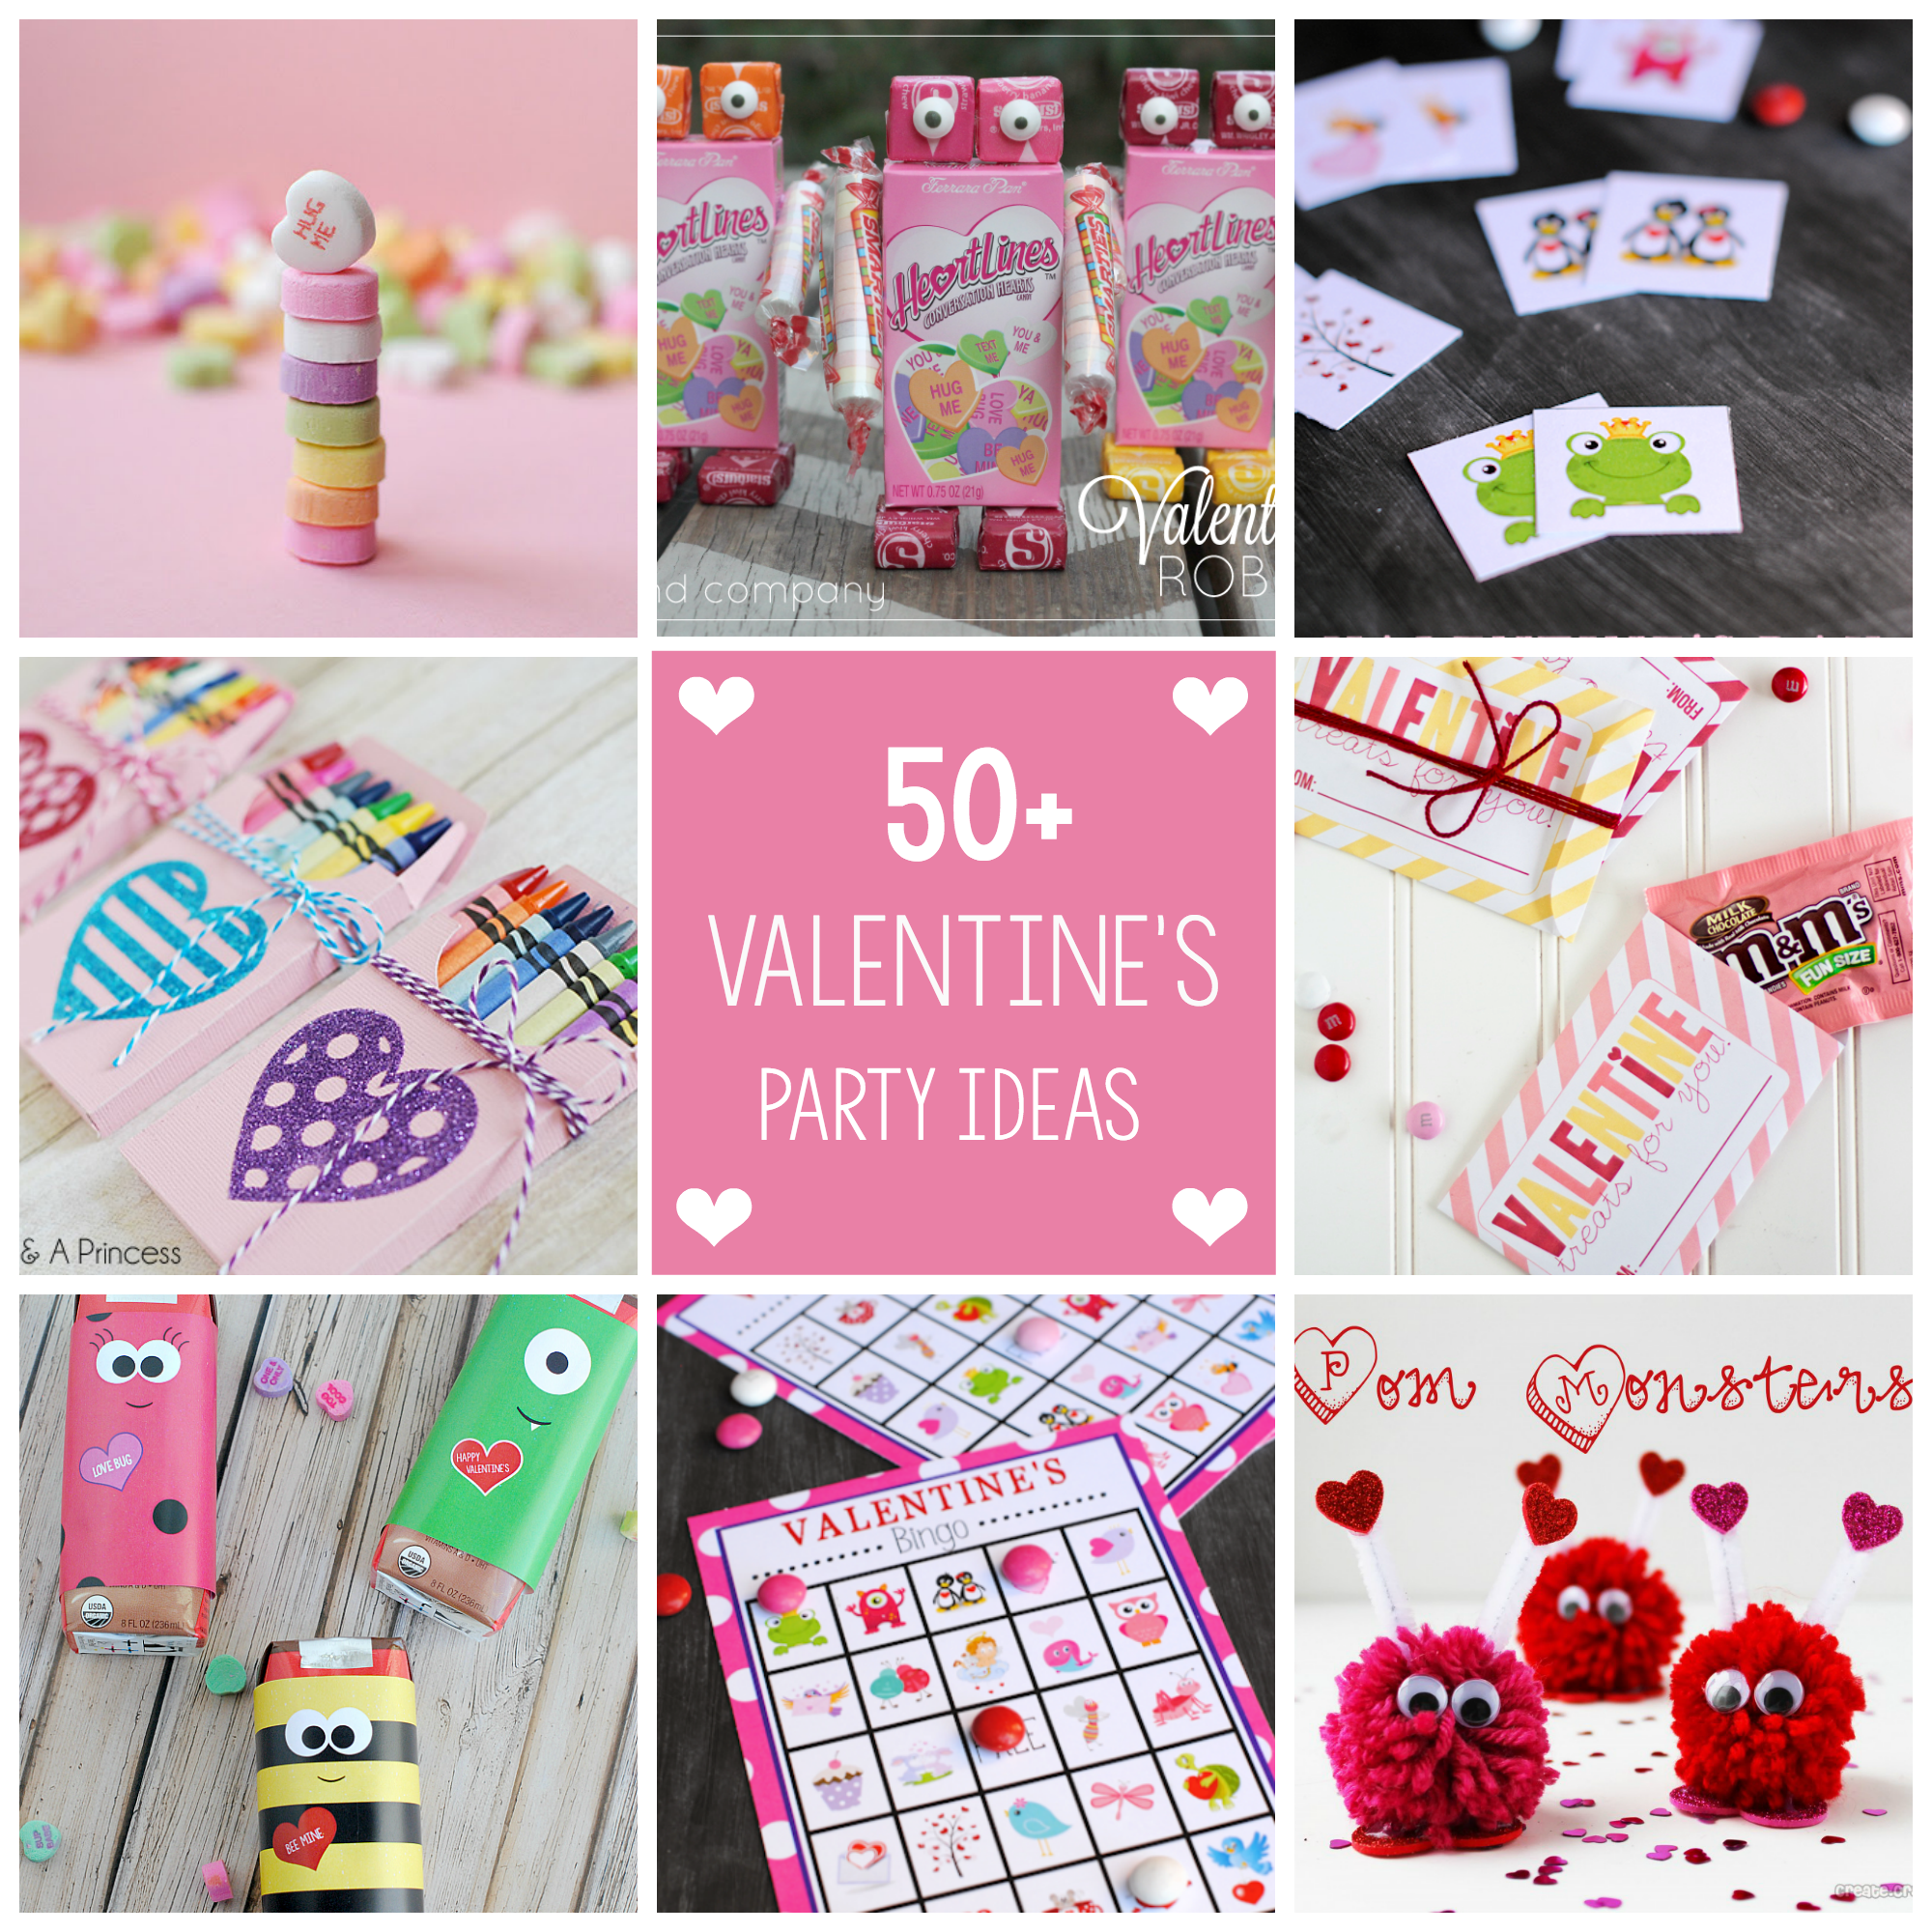 Fun and Easy Valentine's Party Ideas